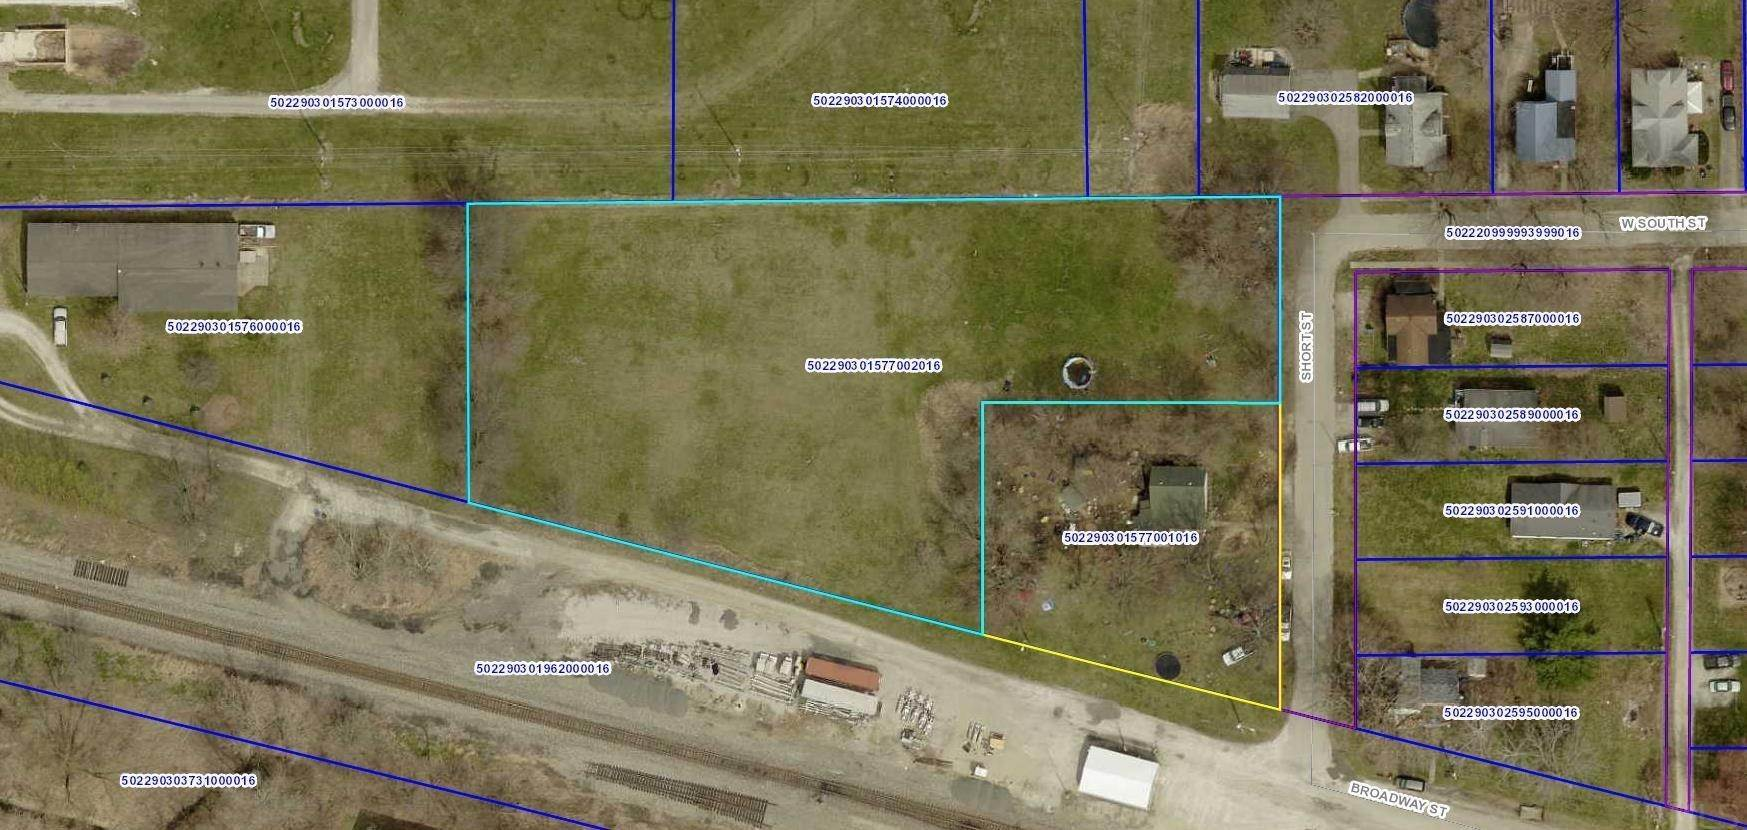 Residential Lots & Land for Sale at TBD S Short Street Argos, Indiana 46501 United States